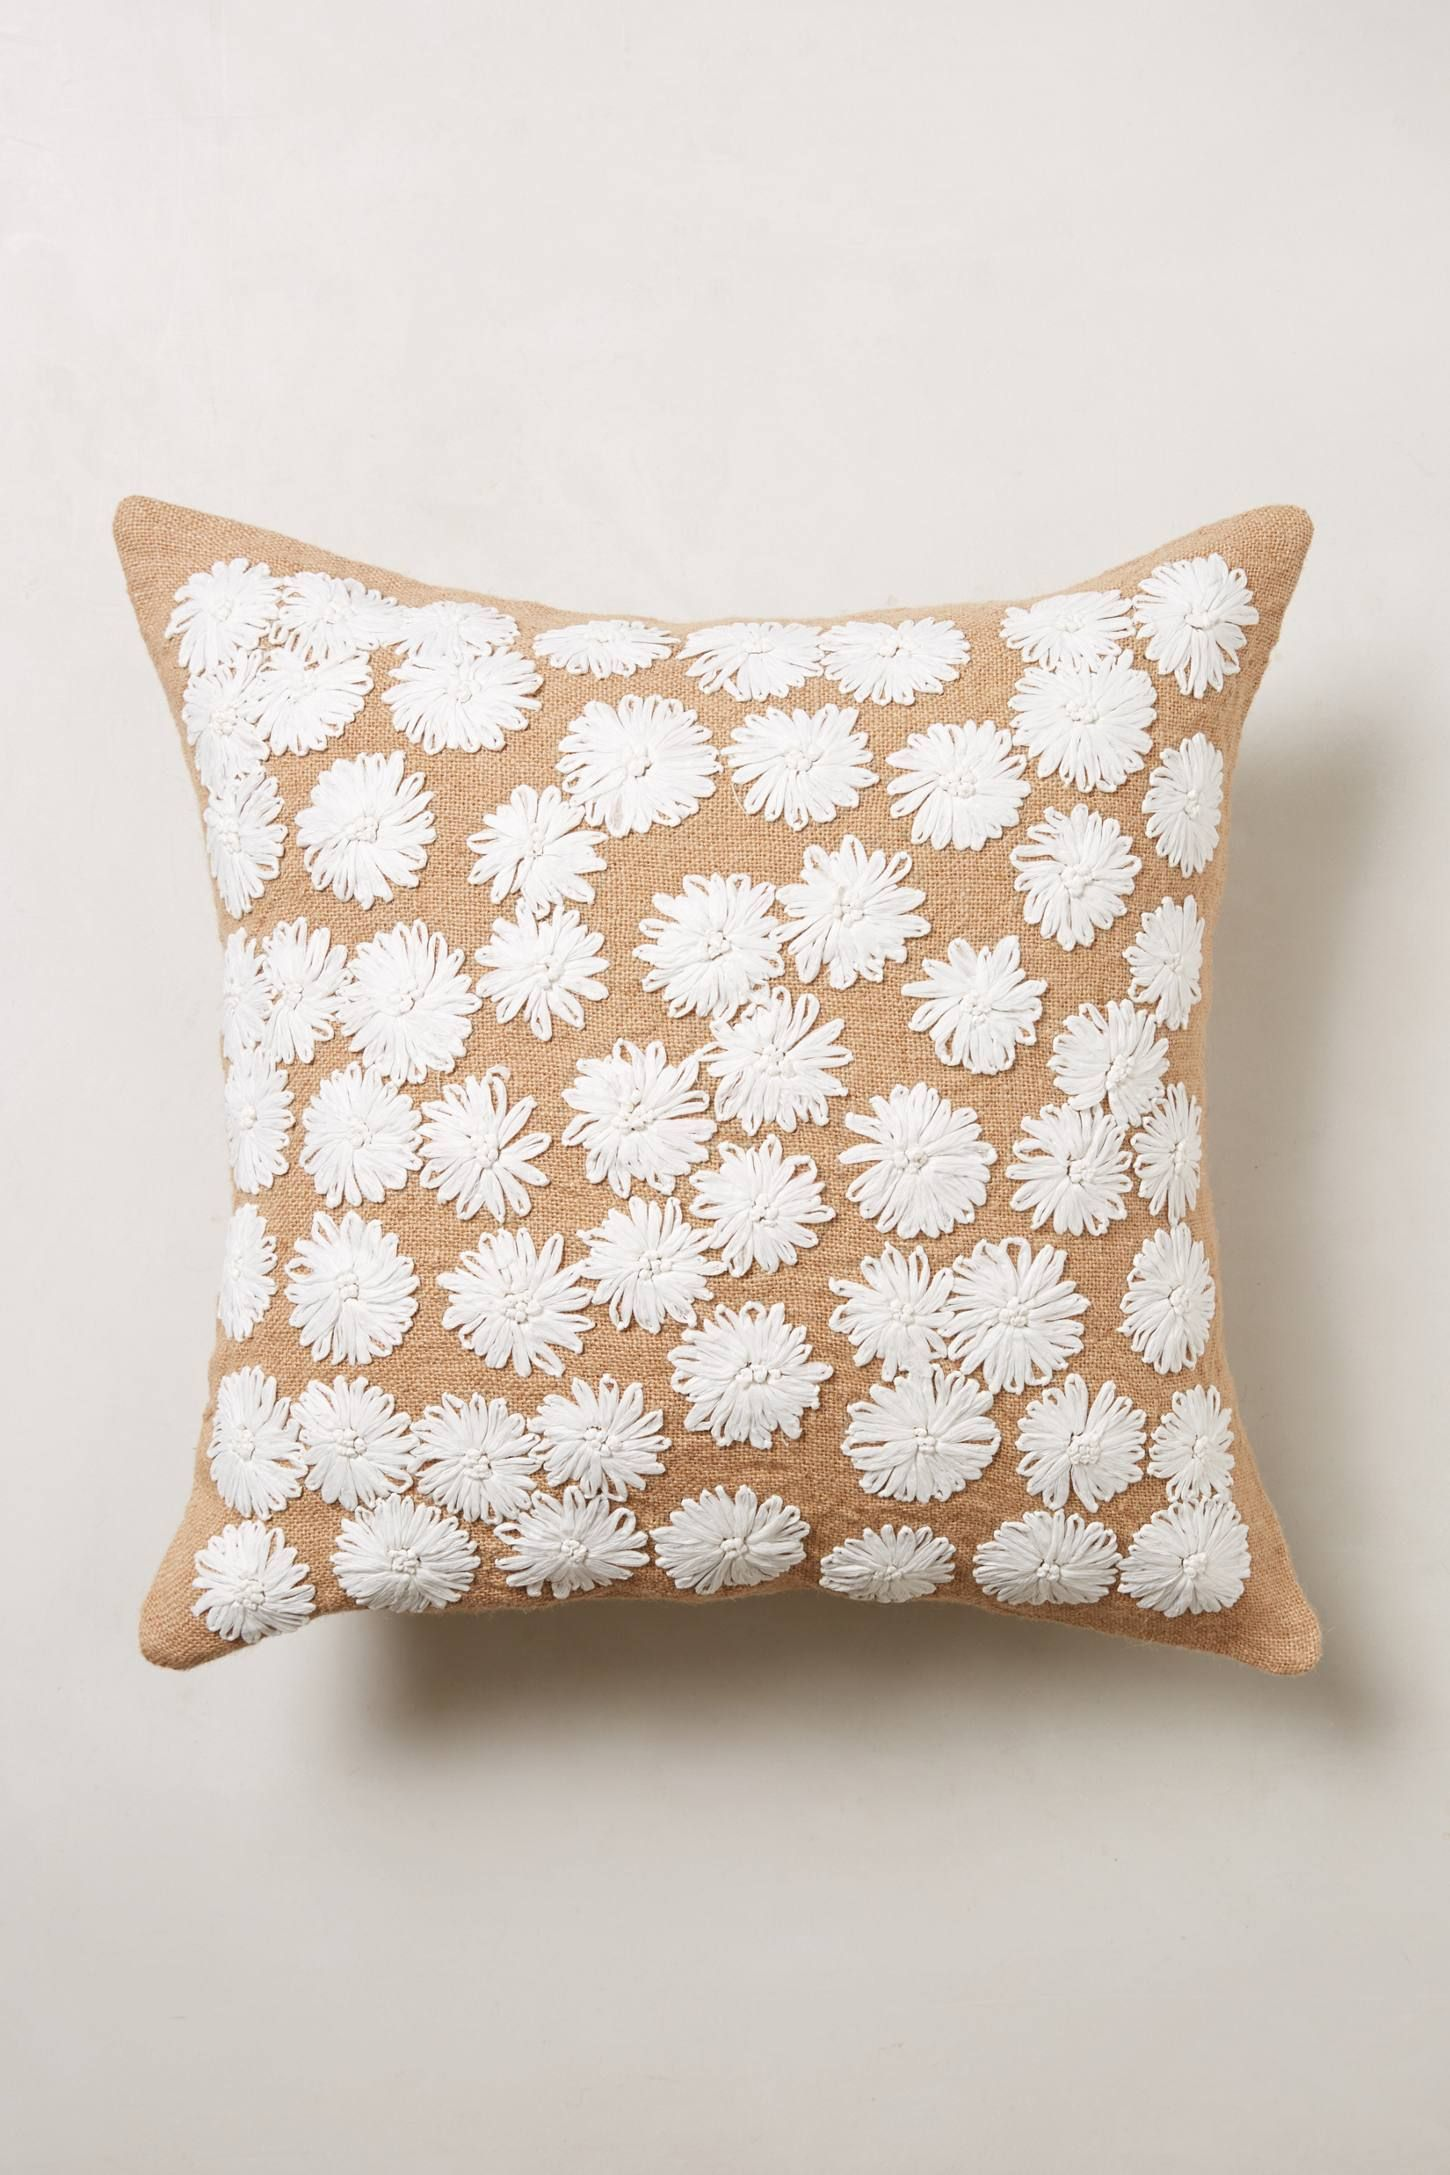 Throw Pillows Luxury : Looped Petals Pillow - anthropologie.com Home love Pinterest Pillows, Needlework and ...